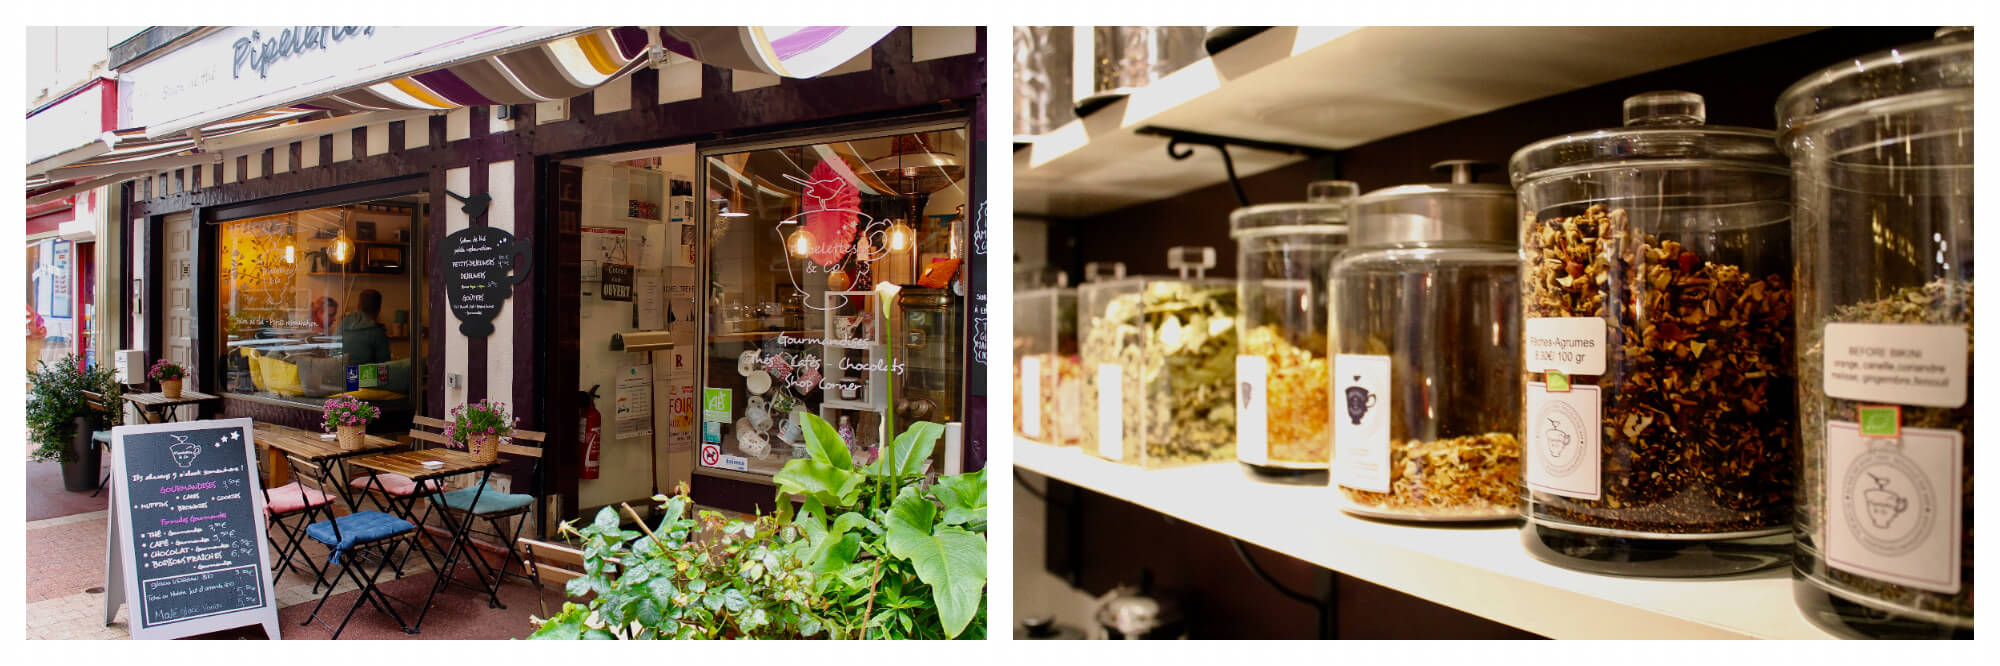 On left: The chalkboard at Pipelettes & Co invite visitors to pop in for tea. Both a salon and shop, it offers a terrace for a relaxing afternoon. On right: Jars of tea leaves line the walls of Pipelettes & Co, a salon and shop in Trouville-sur-Mer.